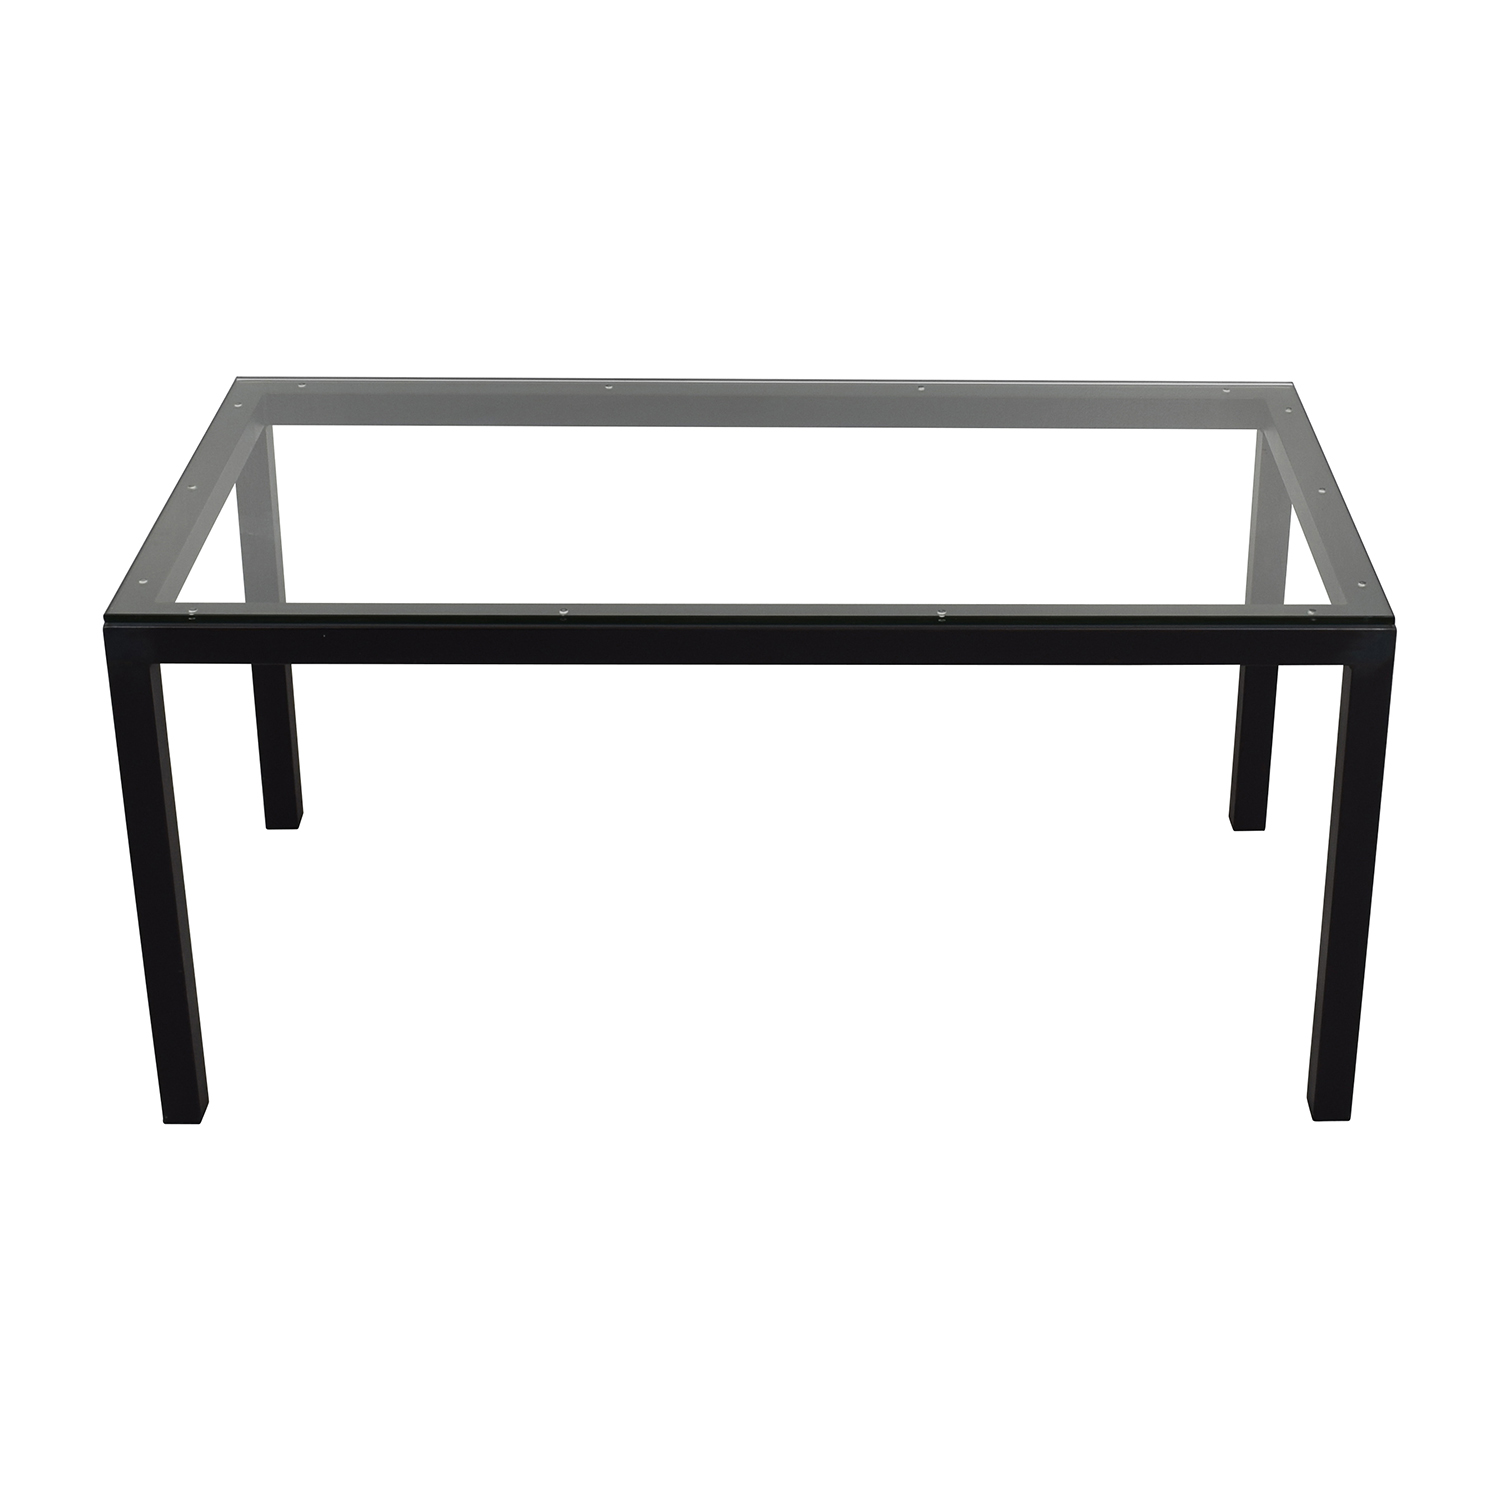 shop Room & Board Room & Board Rectangle Metal Glass Dining Table online